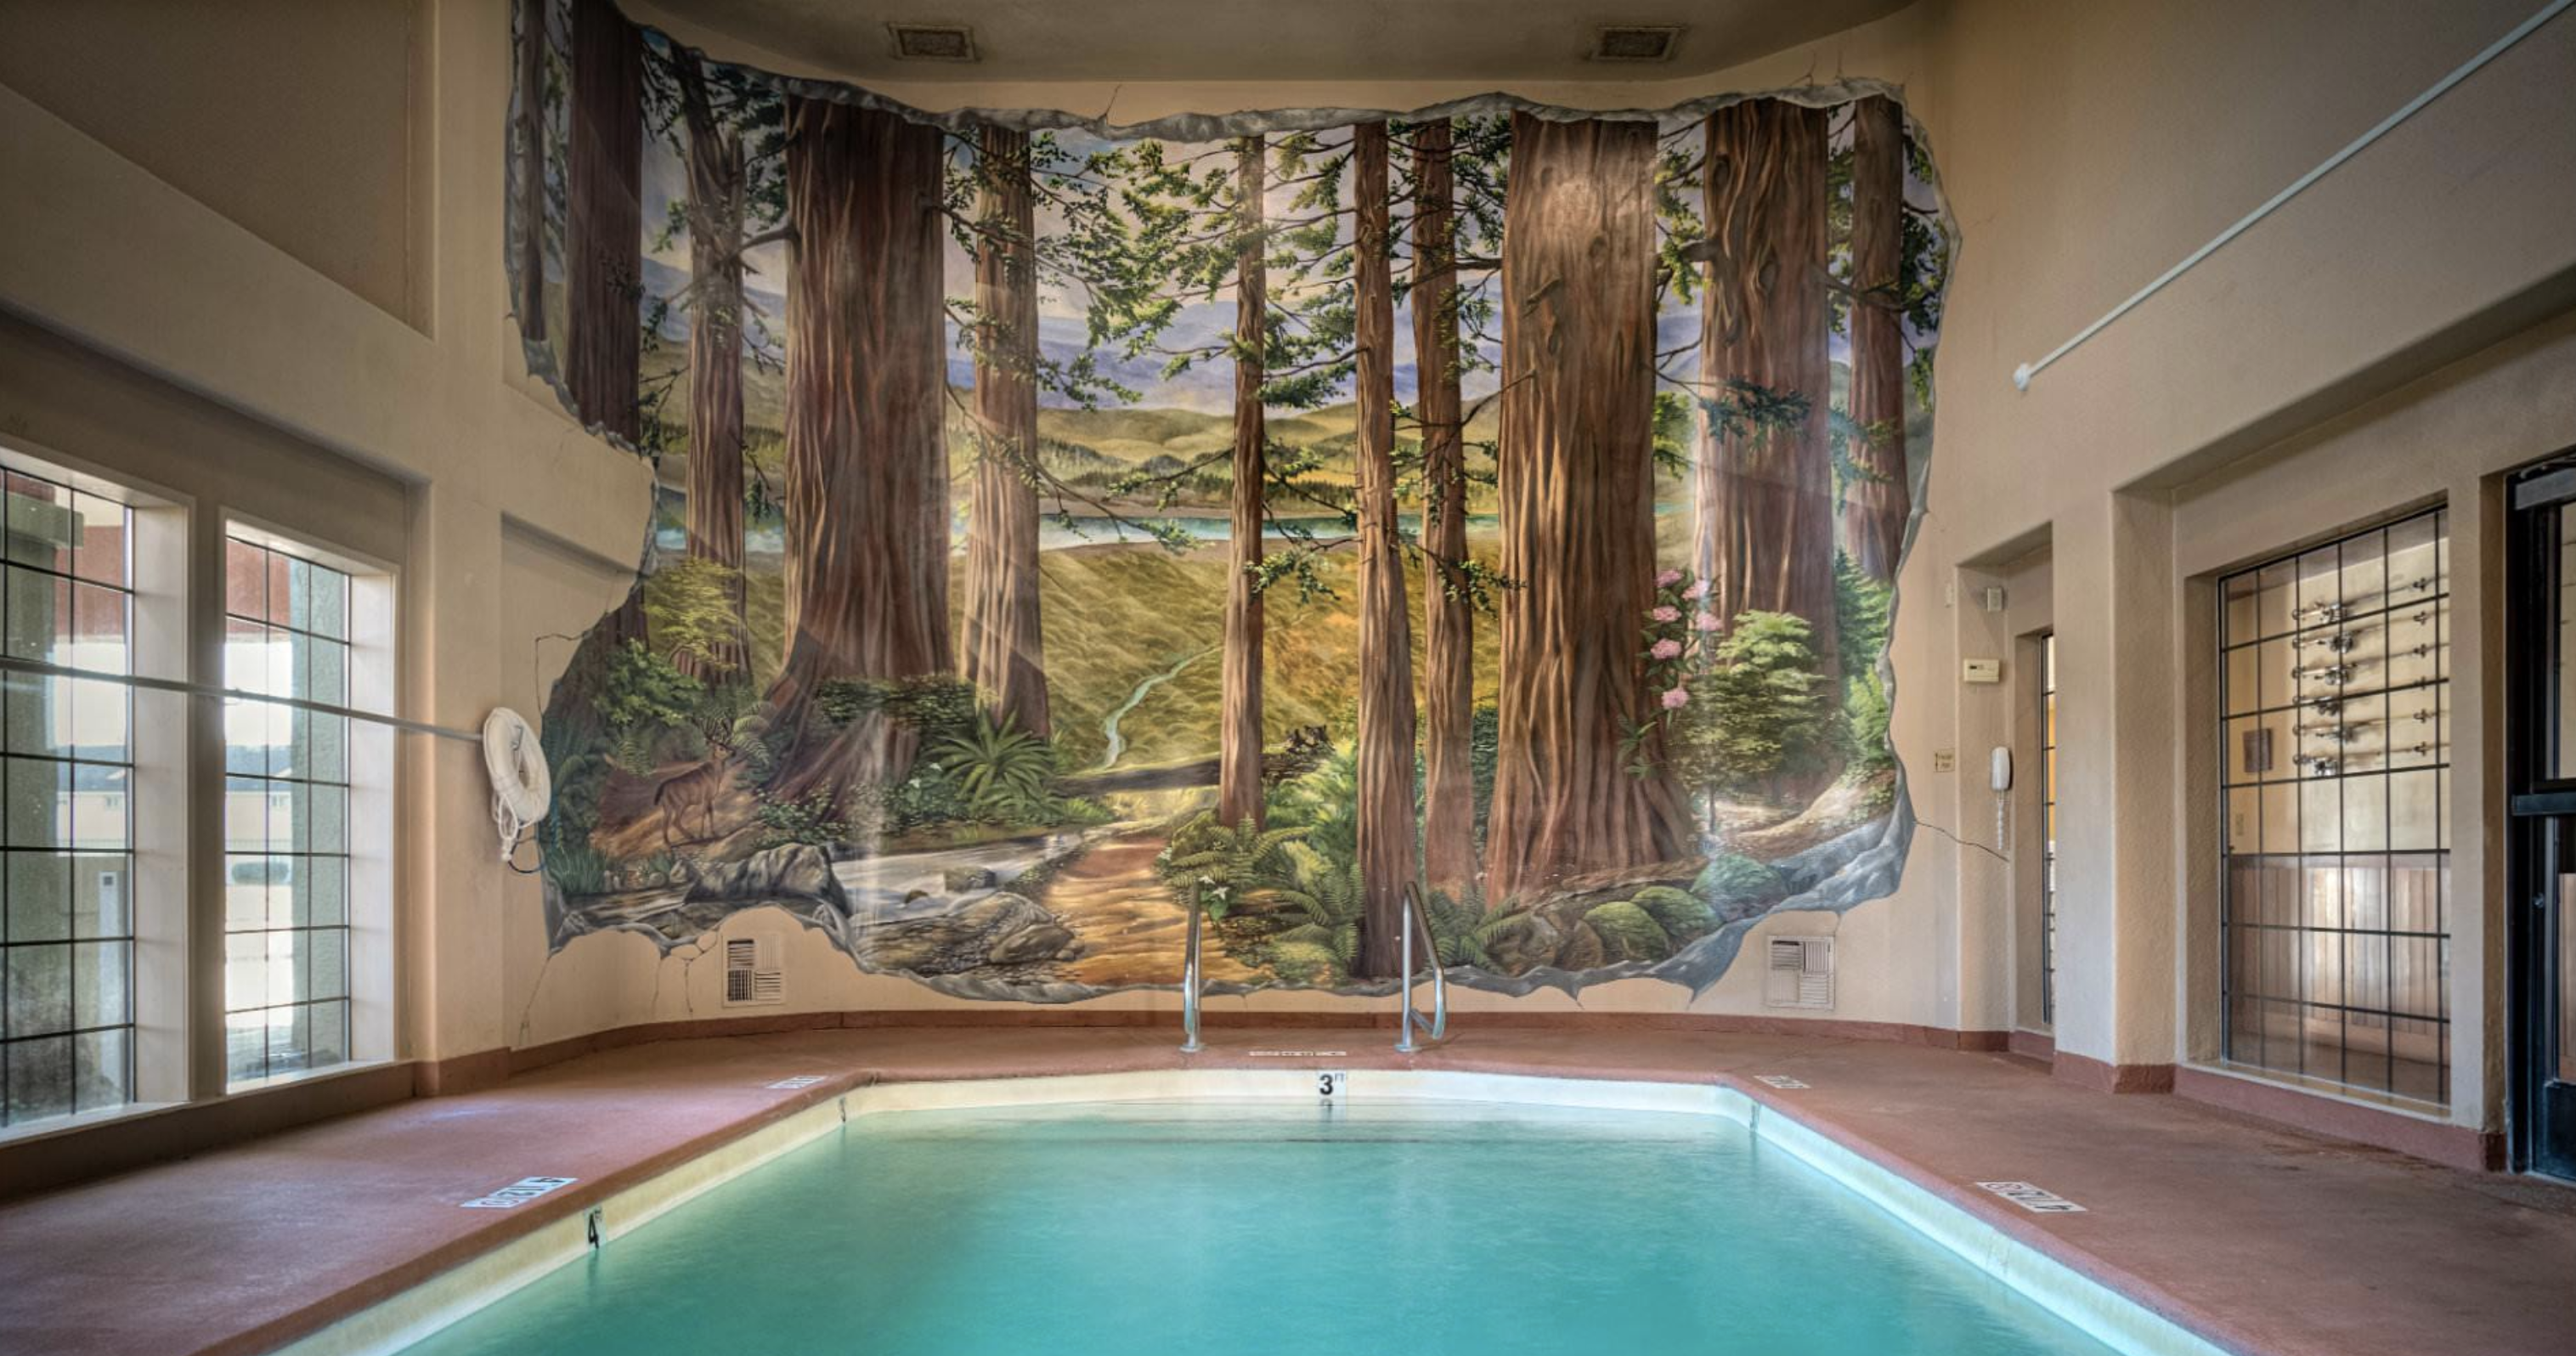 Beautiful mural in the pool area of redwoods